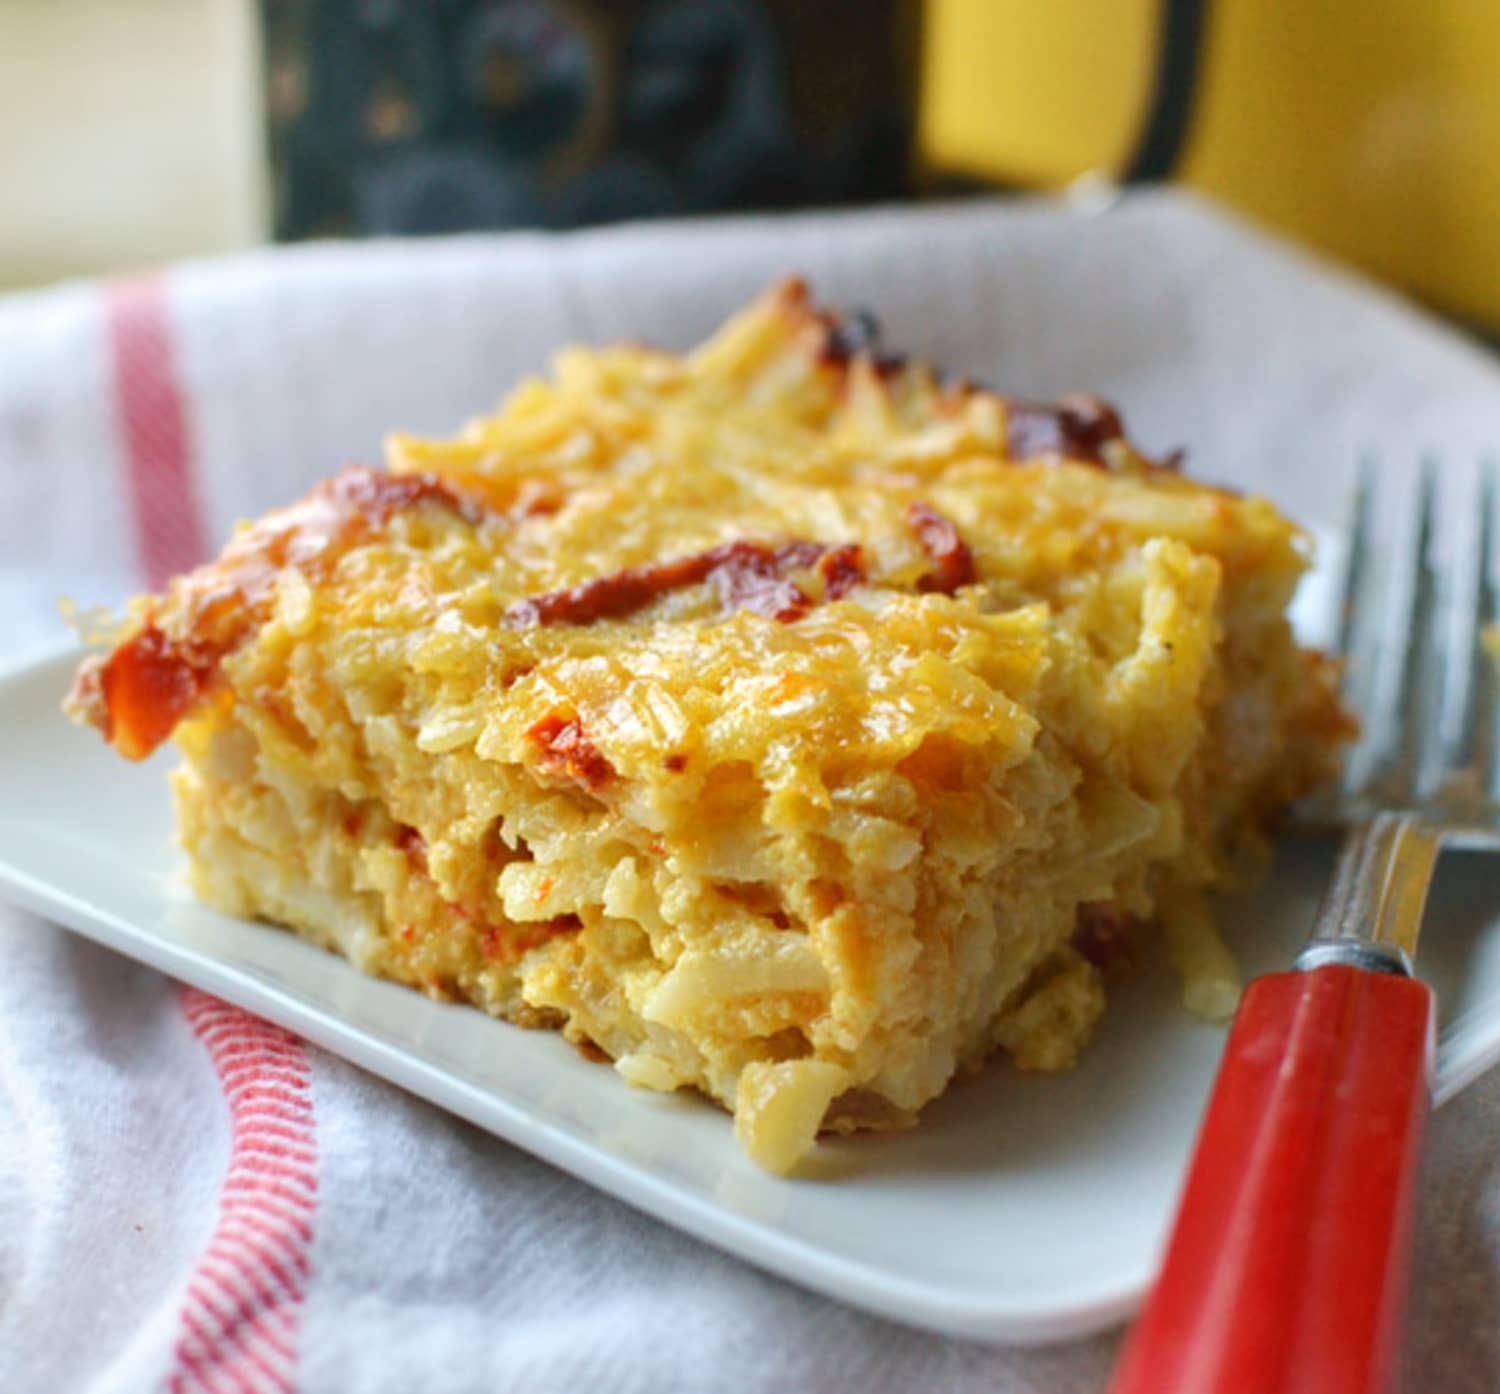 Recipe: Breakfast Casserole With Cheddar & Tomatoes